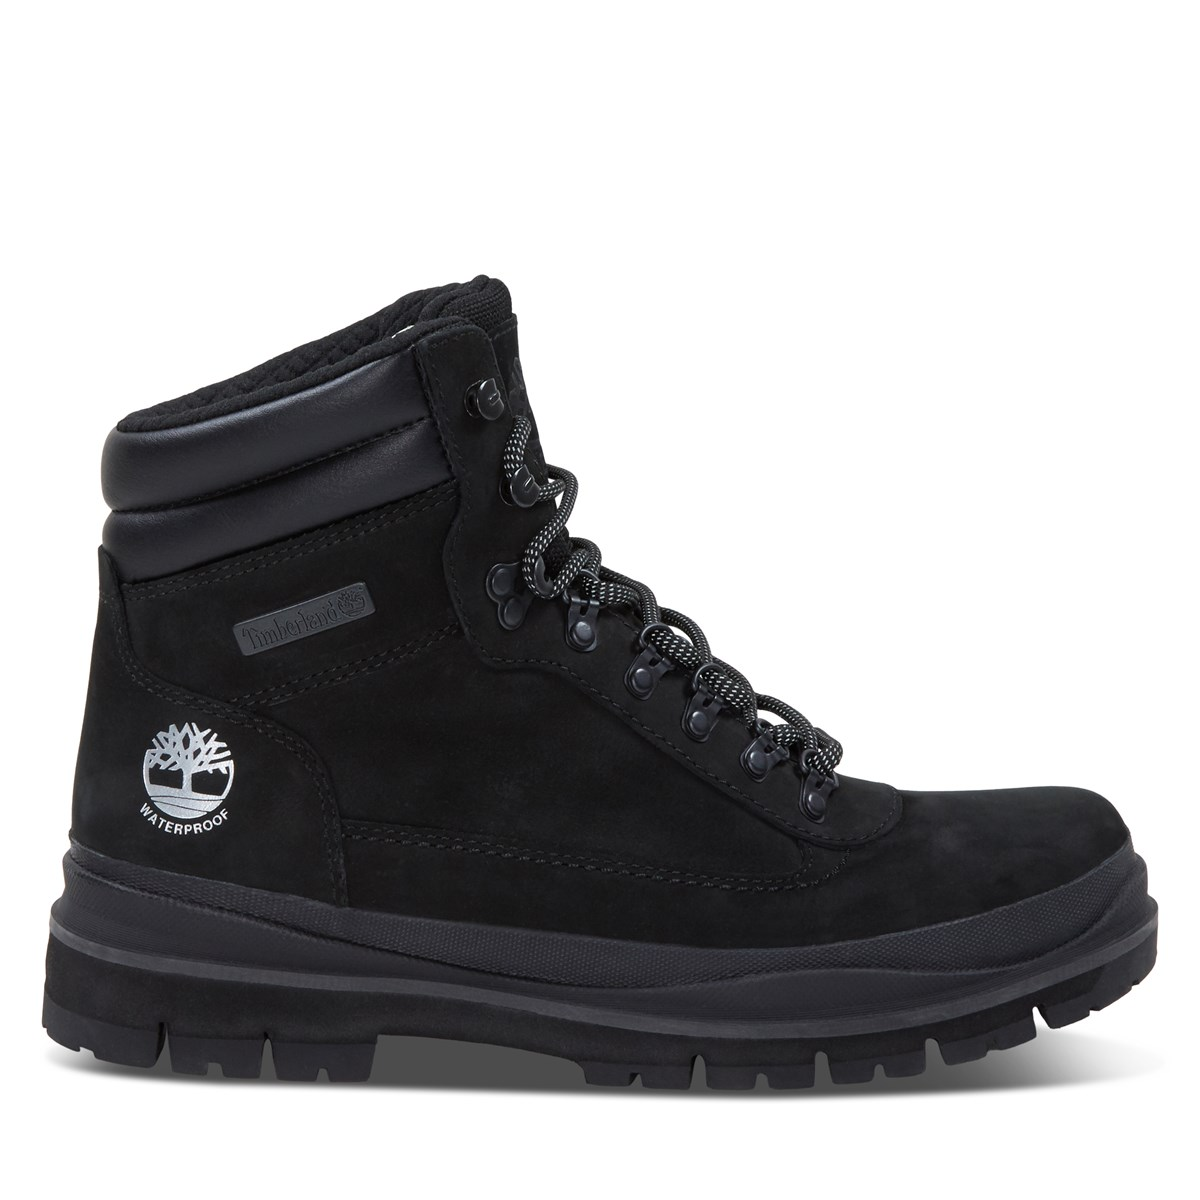 Men's Field Trekker Boots in Black